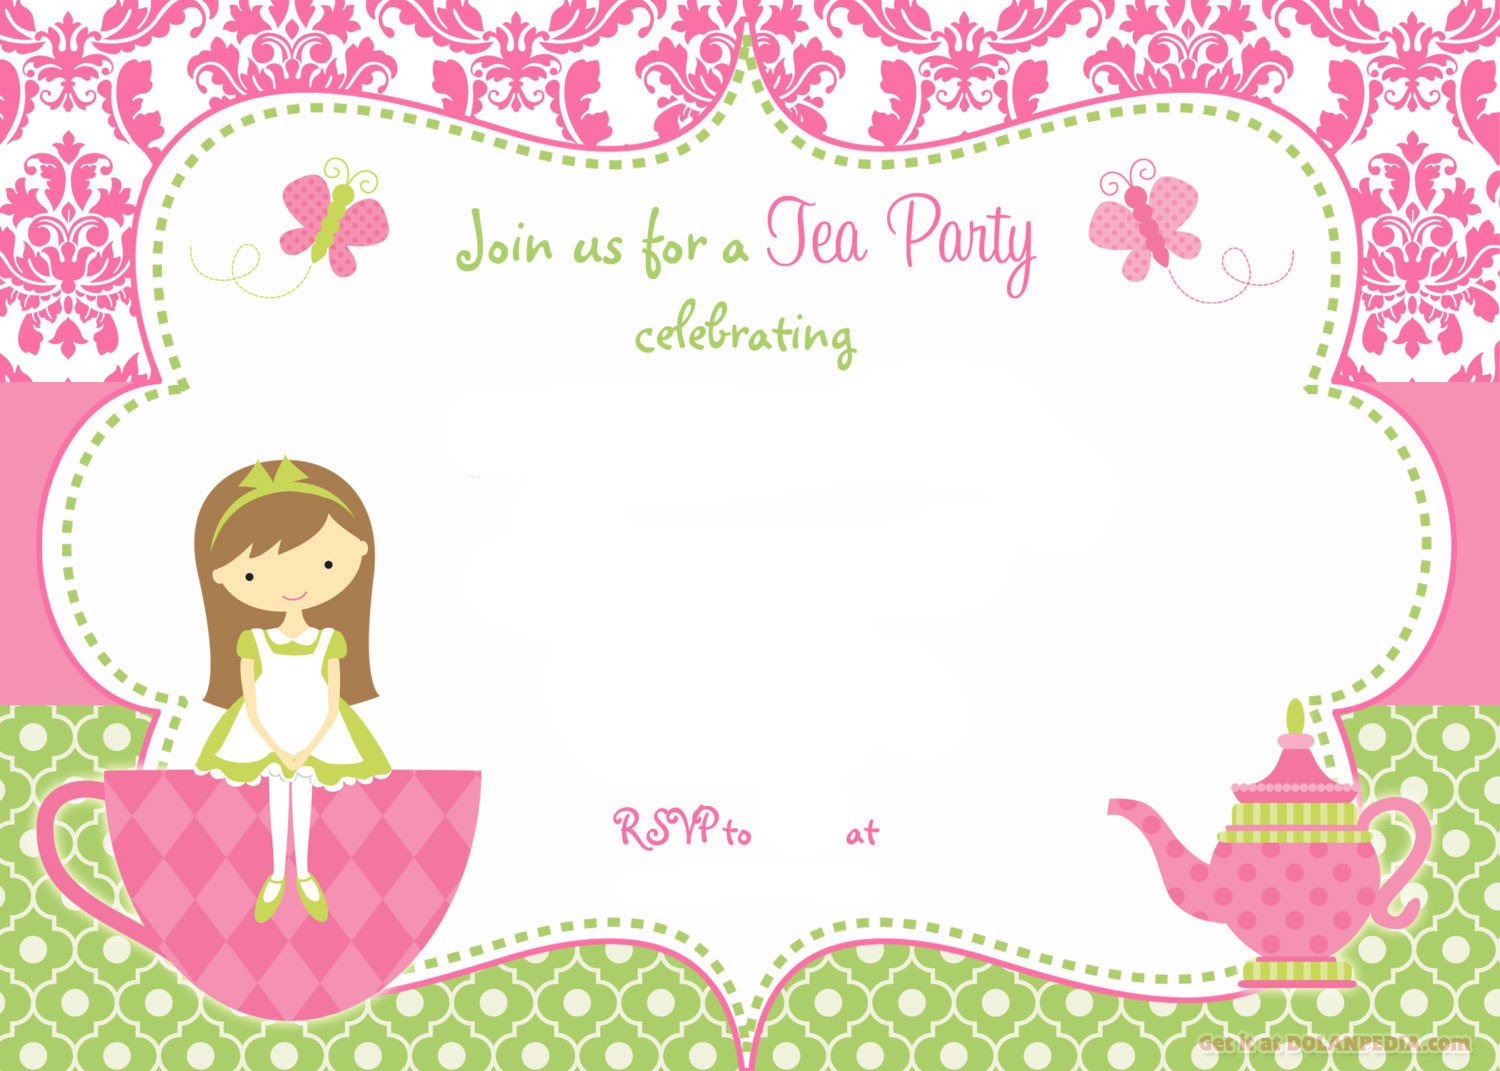 Tea Party Invitations Templates Free Printable Tea Party Invitation Template for Girl